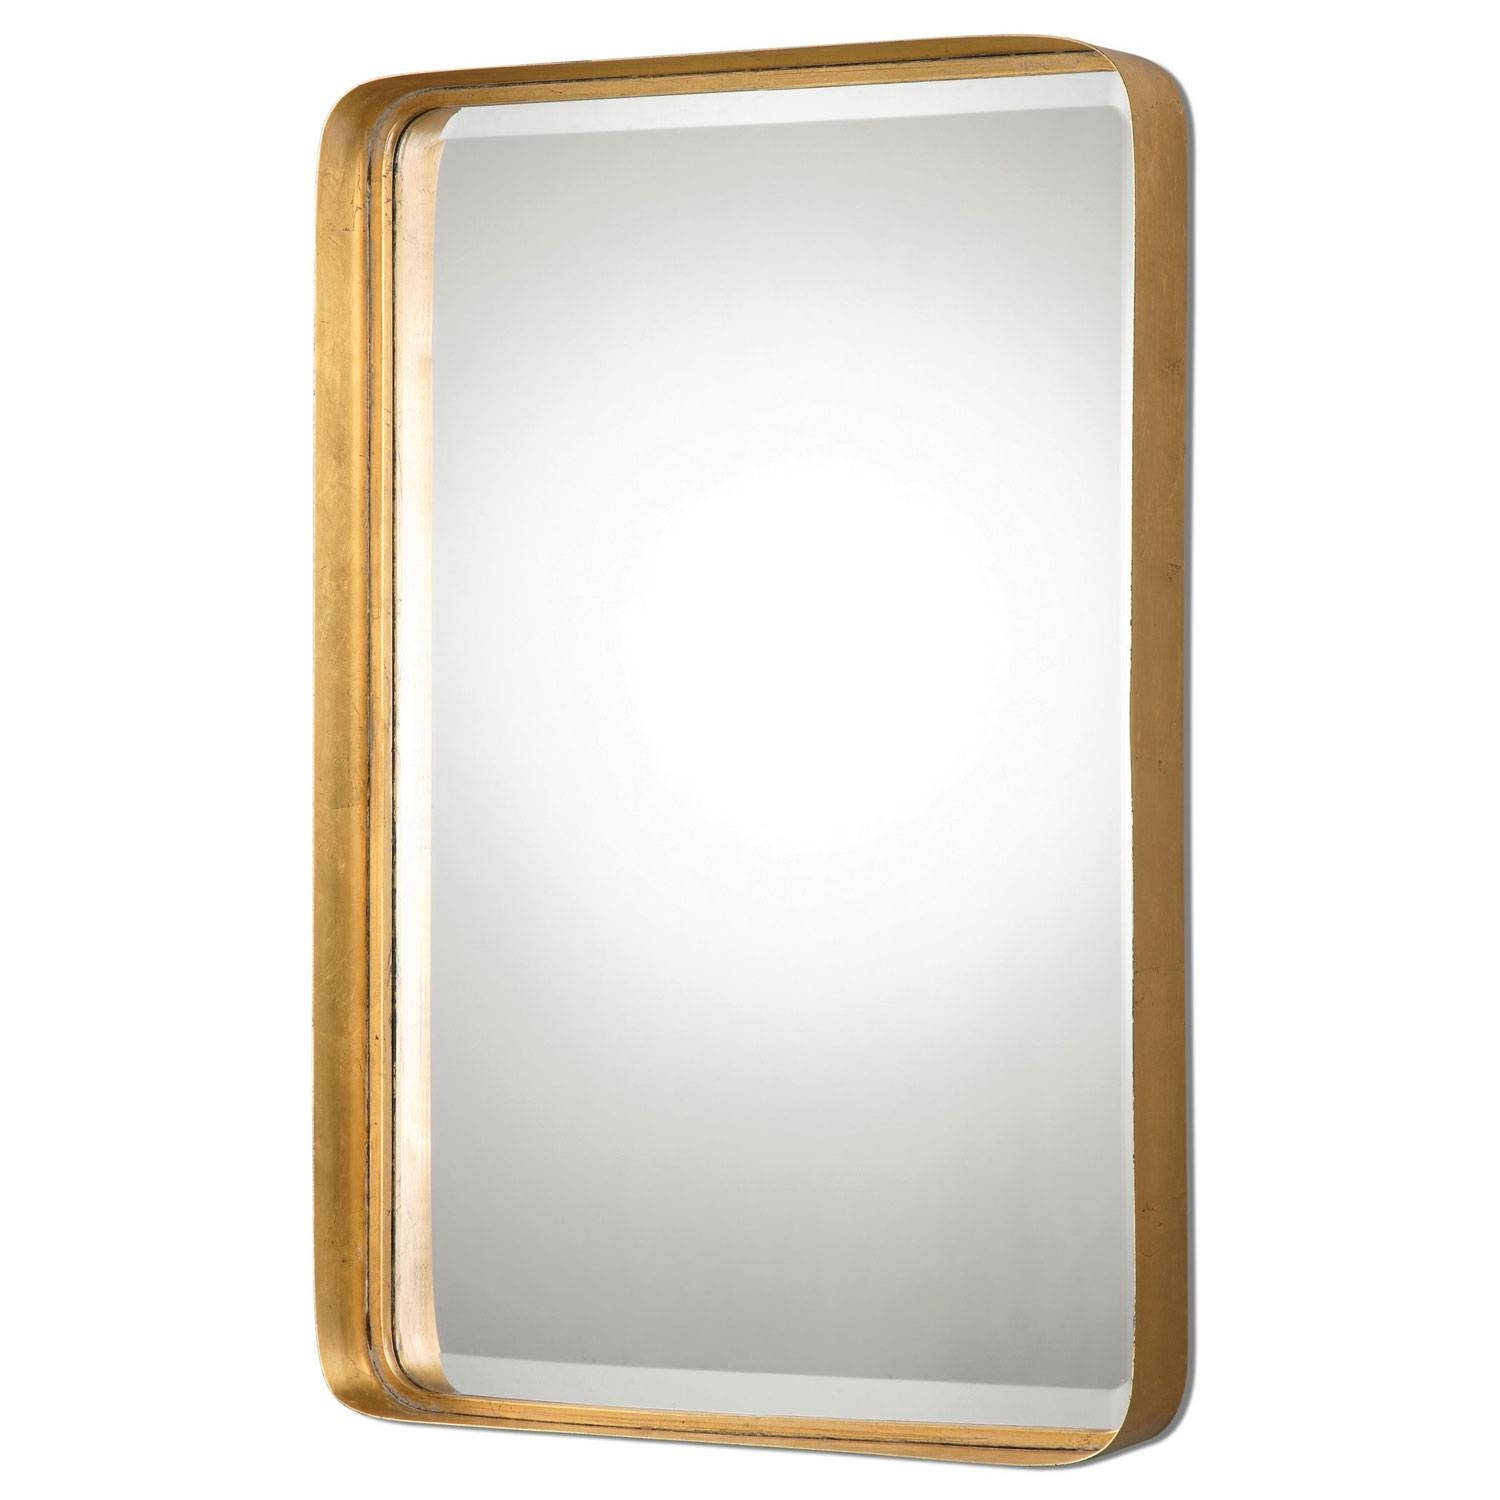 Decorative Gold Mirrors. Gold Decorative Framed Bevelled Wall pertaining to Ornate Gold Mirrors (Image 7 of 25)